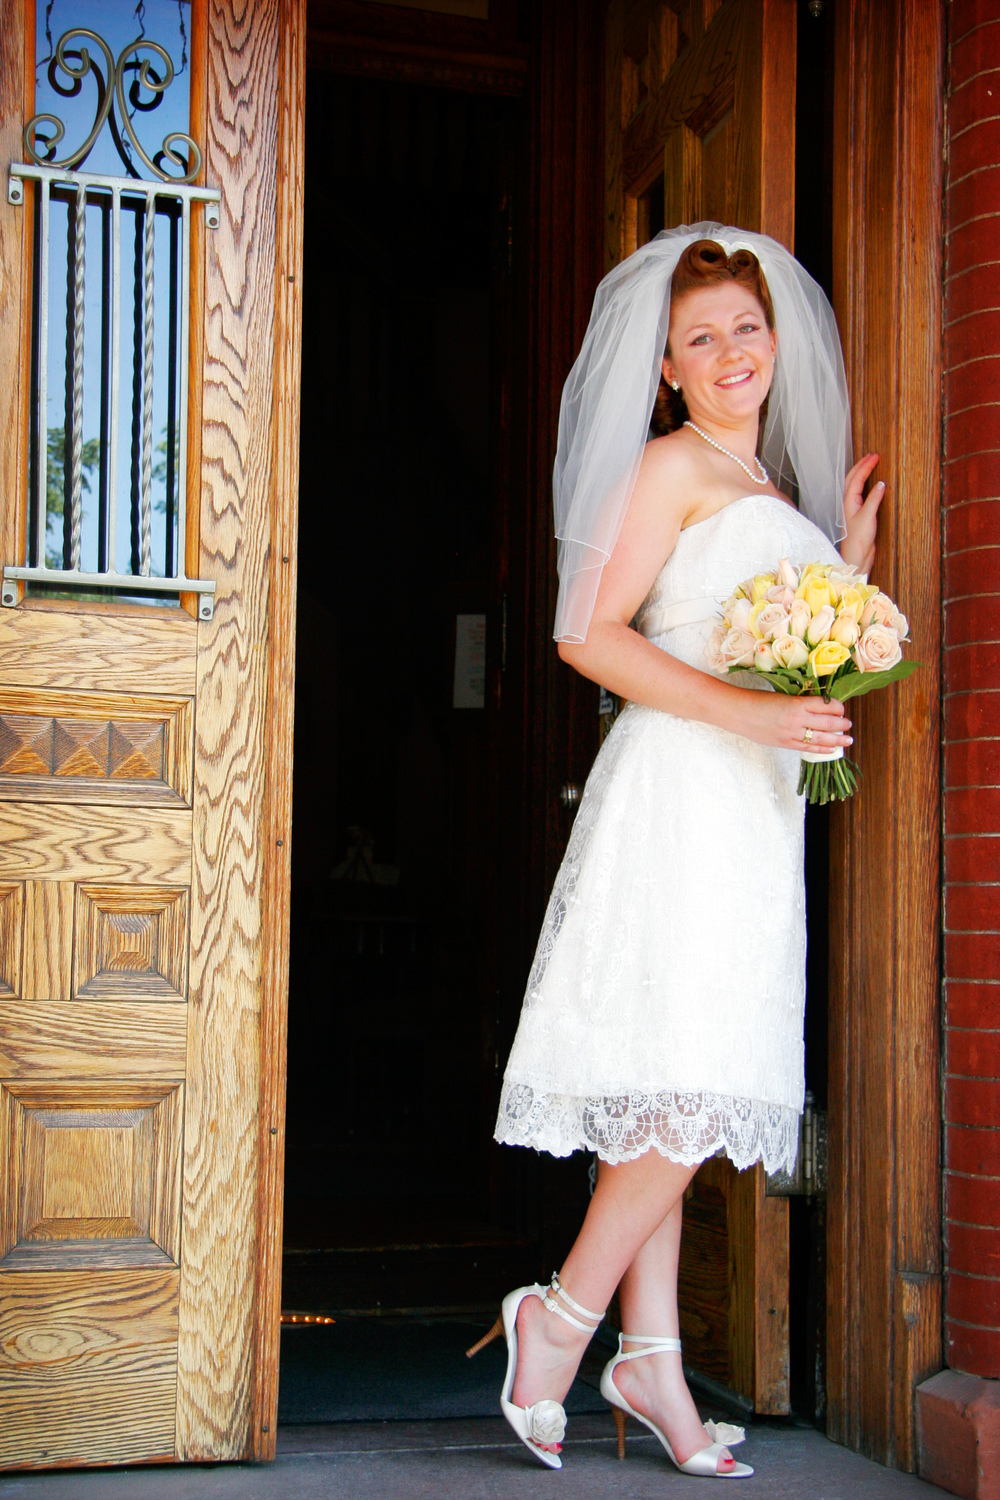 Highlands_Vespa_Denver_Wedding_009.JPG